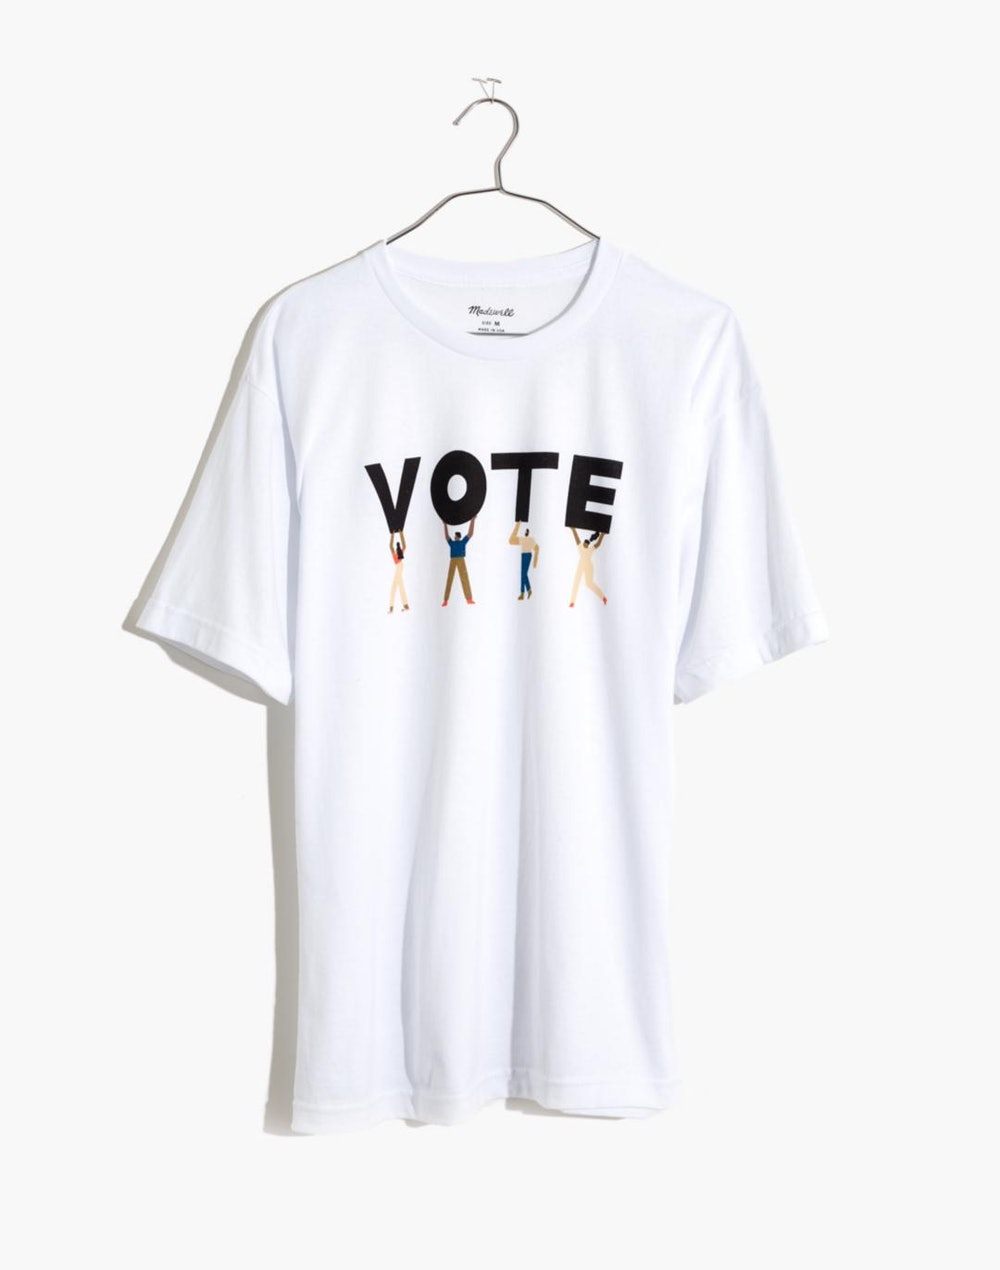 Vote Graphic Unisex Tee